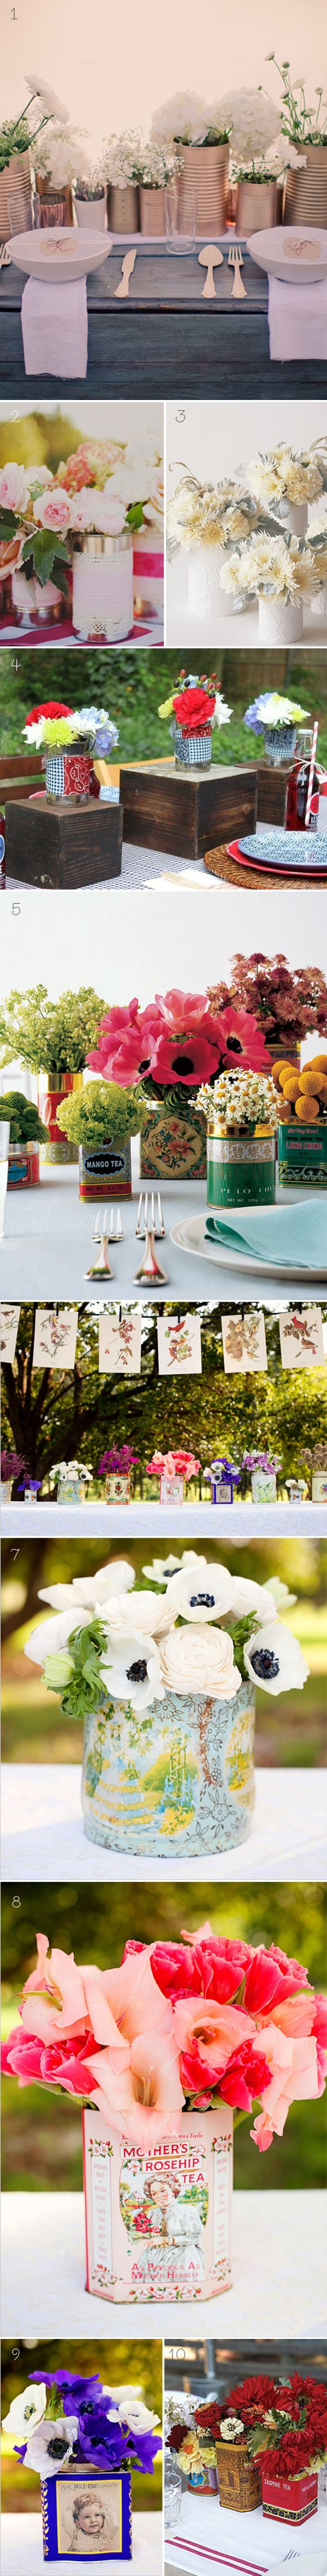 Tintastic! using cans for centerpieces for a wedding on a budget